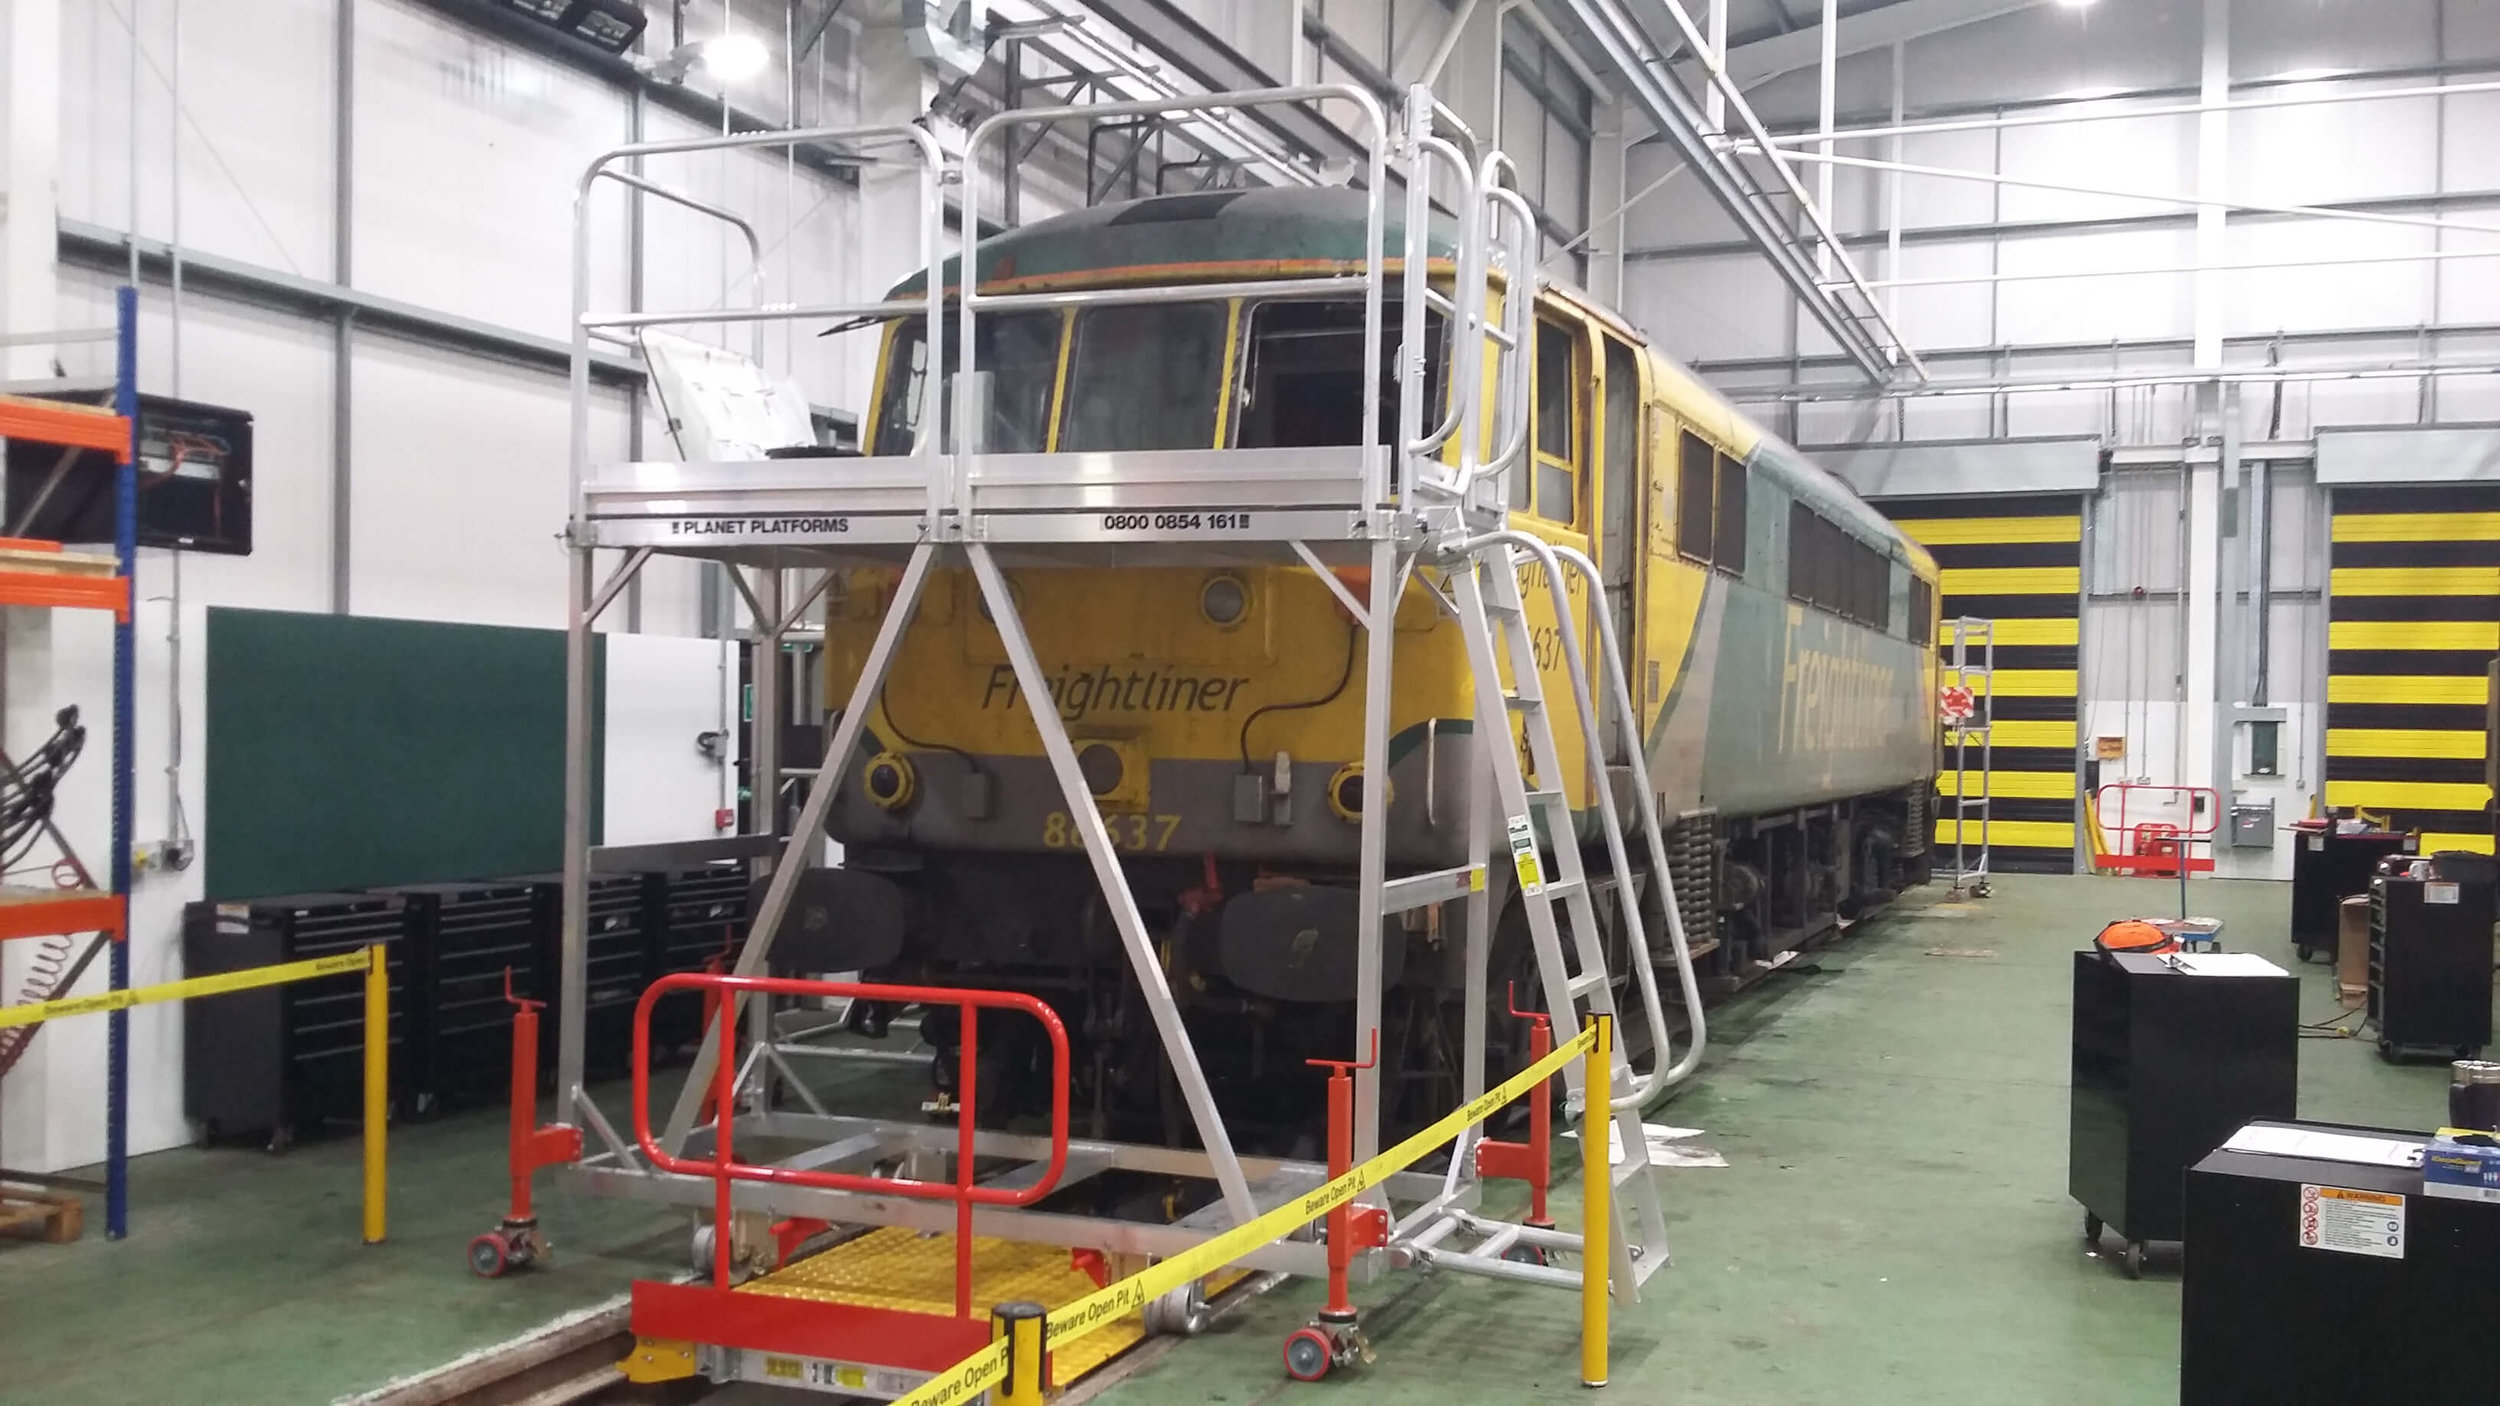 79. Train Aluminium Access Platform